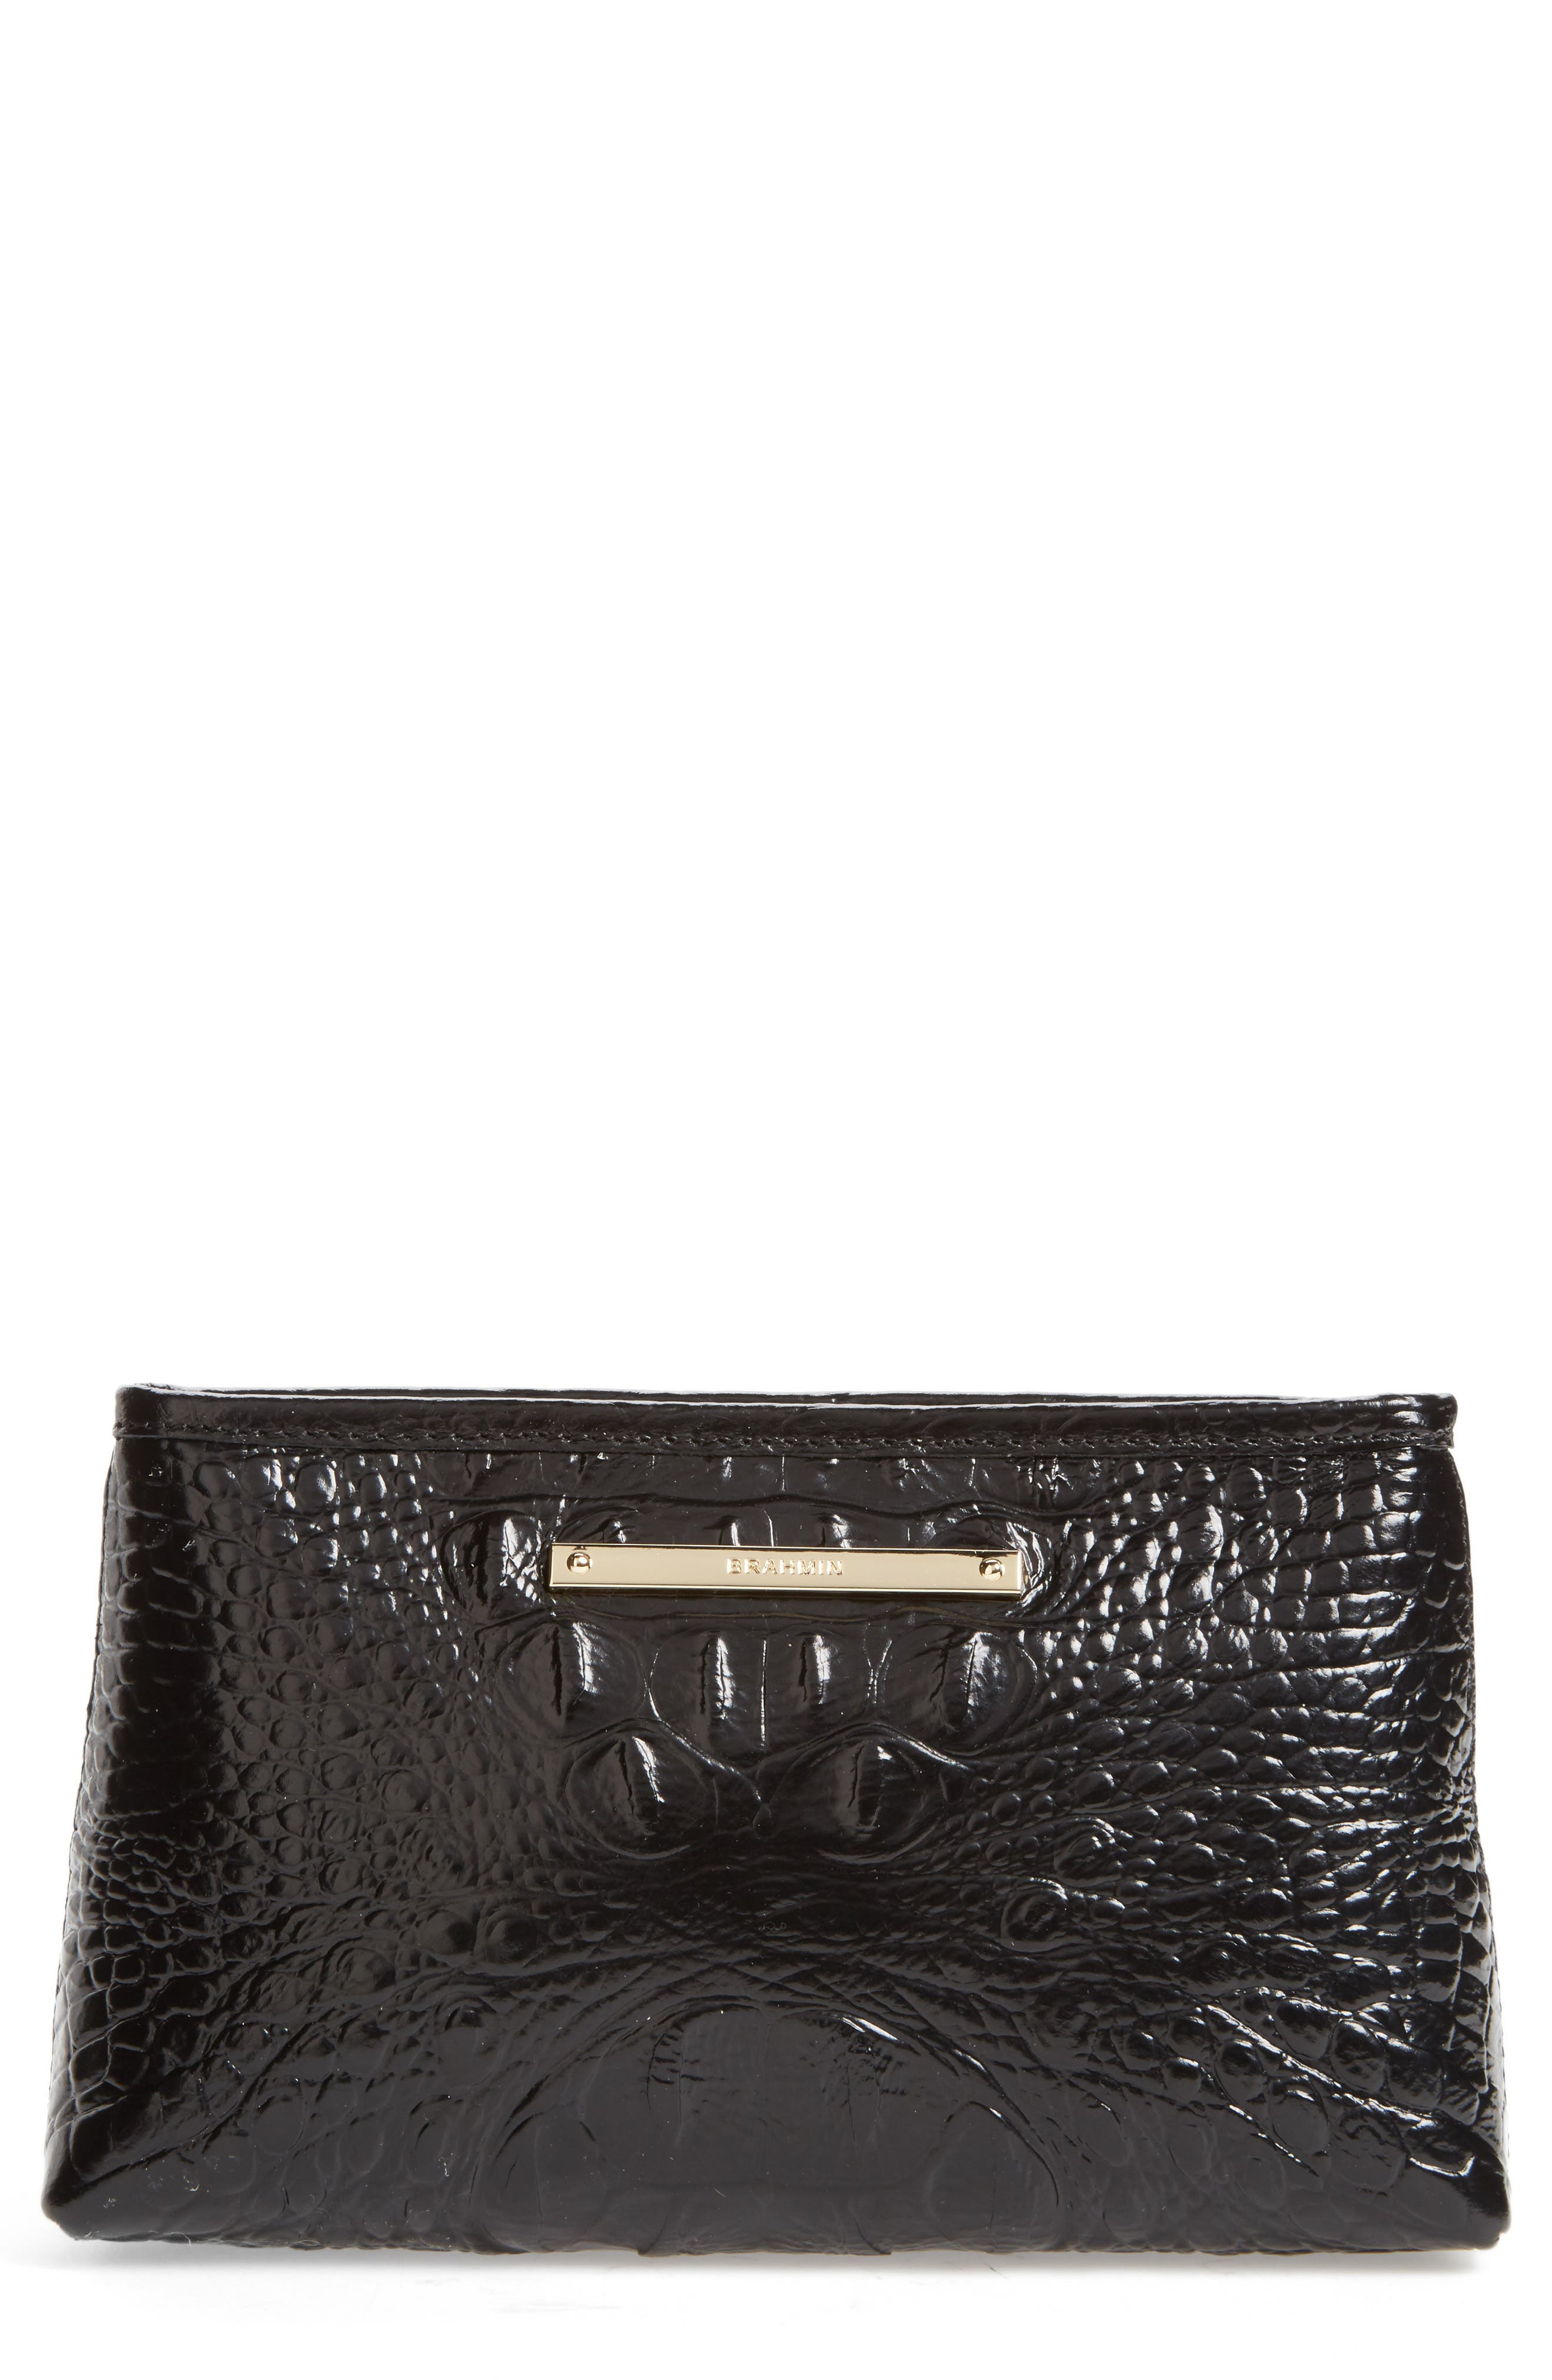 Alternate Image 1 Selected - Brahmin Marney Croc Embossed Zip Pouch